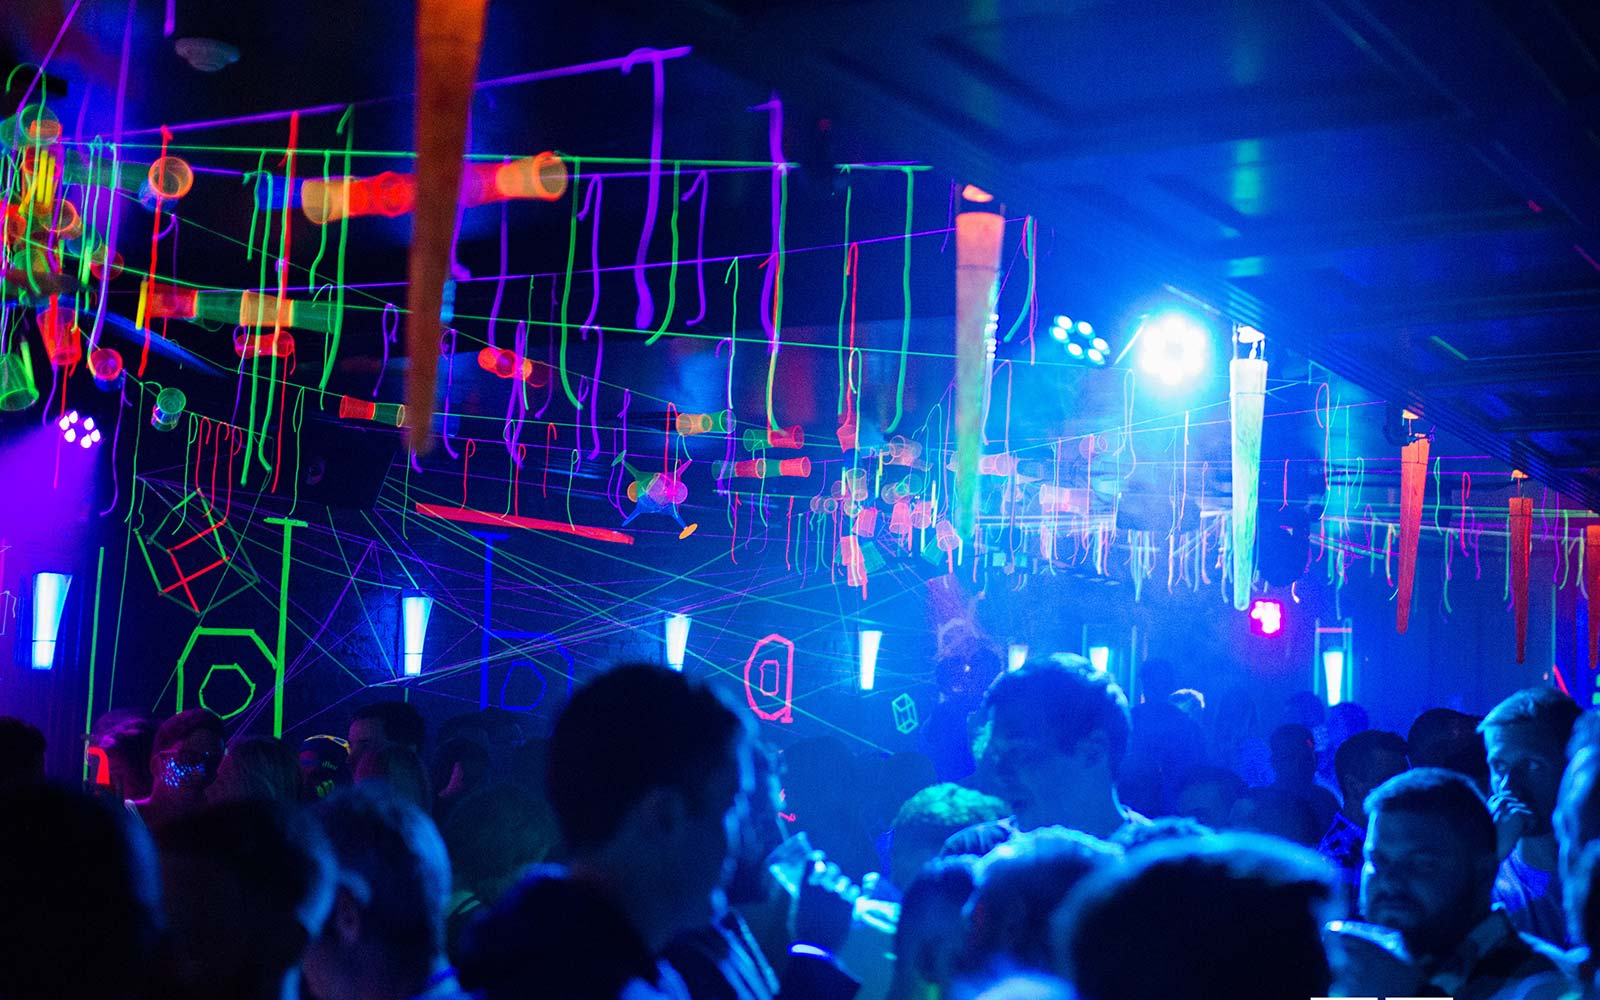 Six of the Best Gay Bars and Clubs in Boston